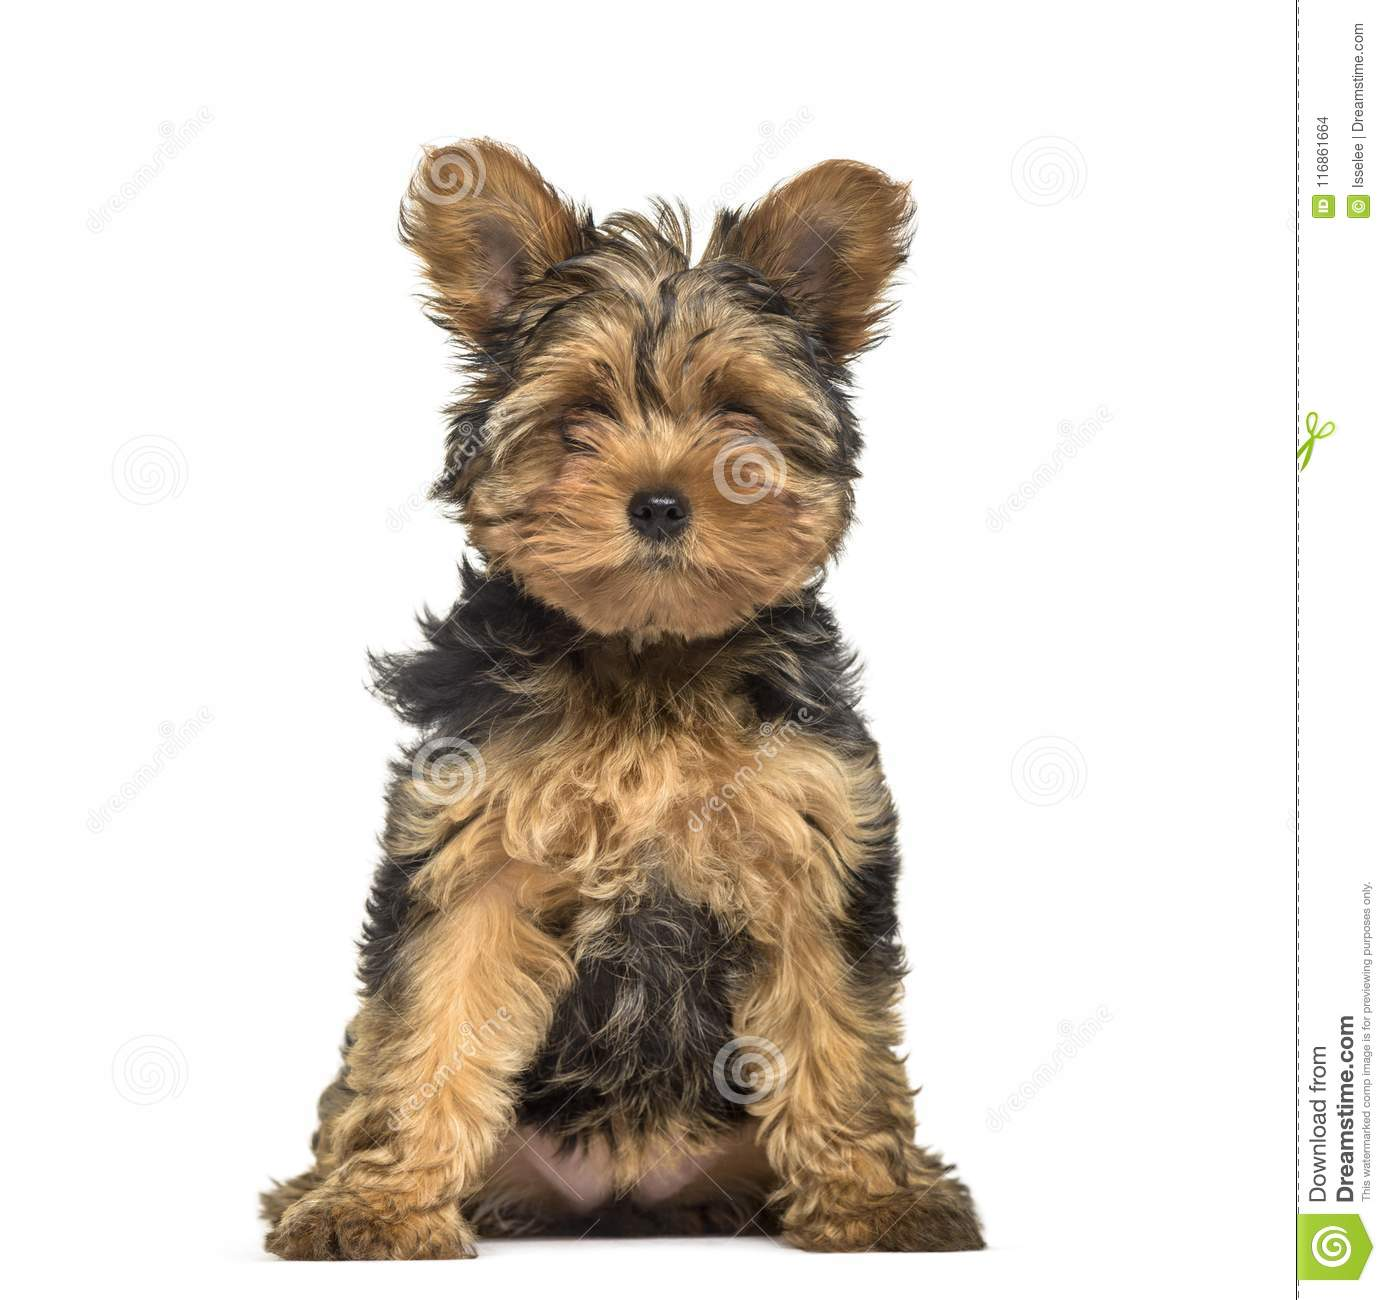 Yorkshire Terrier Puppy 3 Months Old Stock Photo Image Of Alone